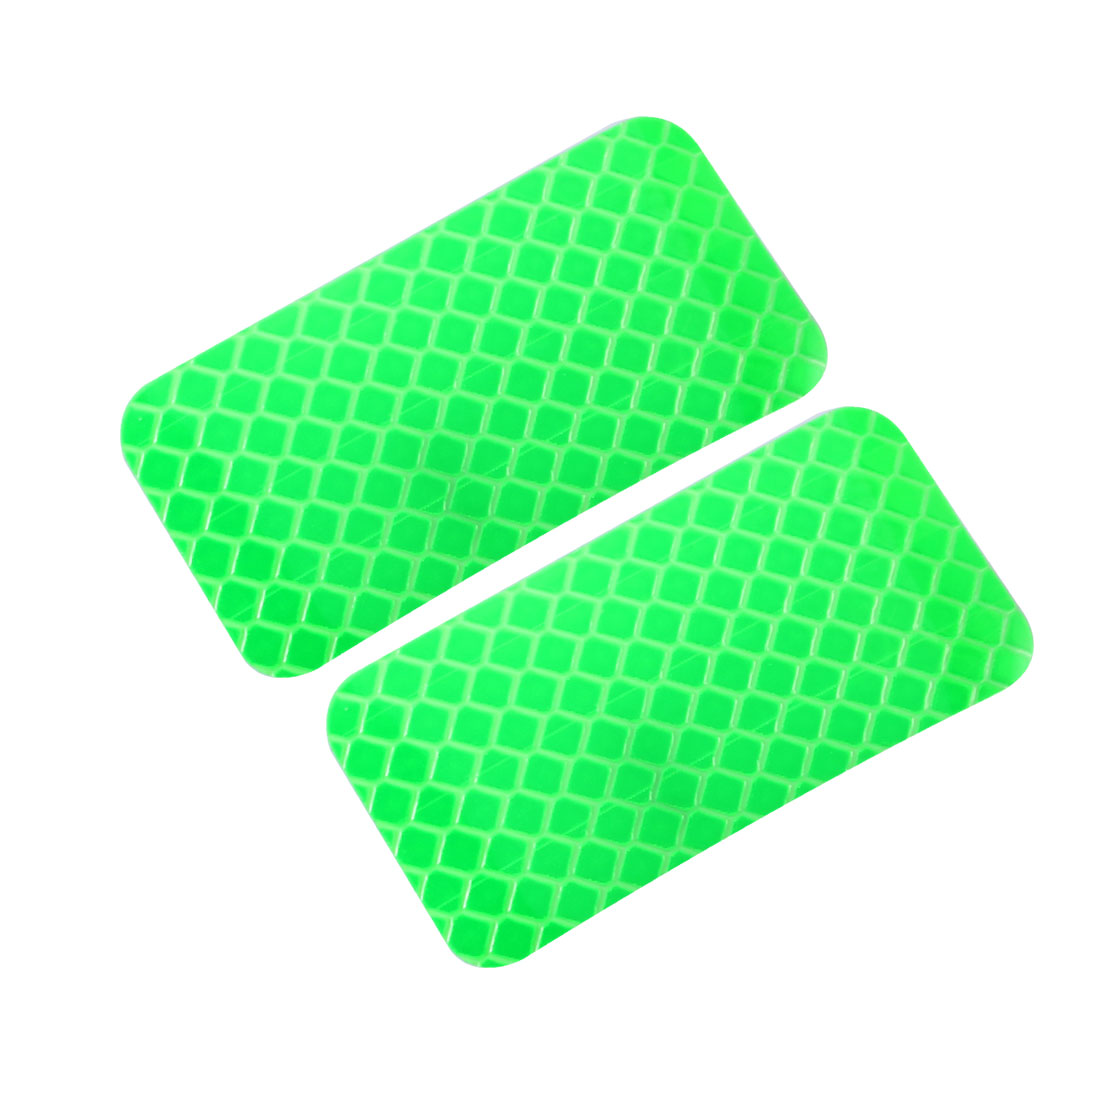 2pcs Honeycomb Reflective Warning Tape Film Sticker Green 30mm x 60mm